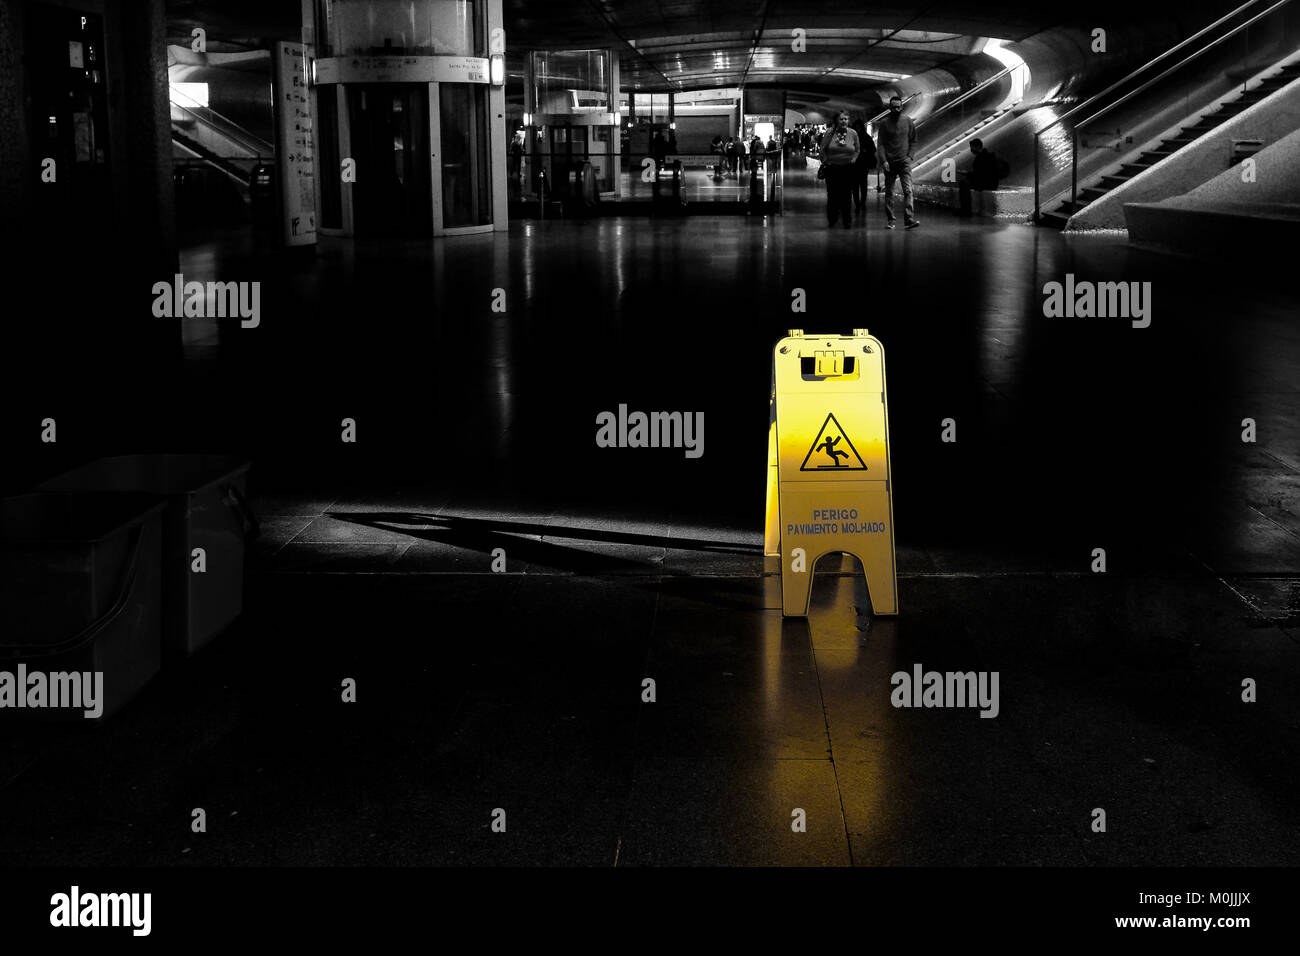 Warning sign on slippery floor ahead - Stock Image